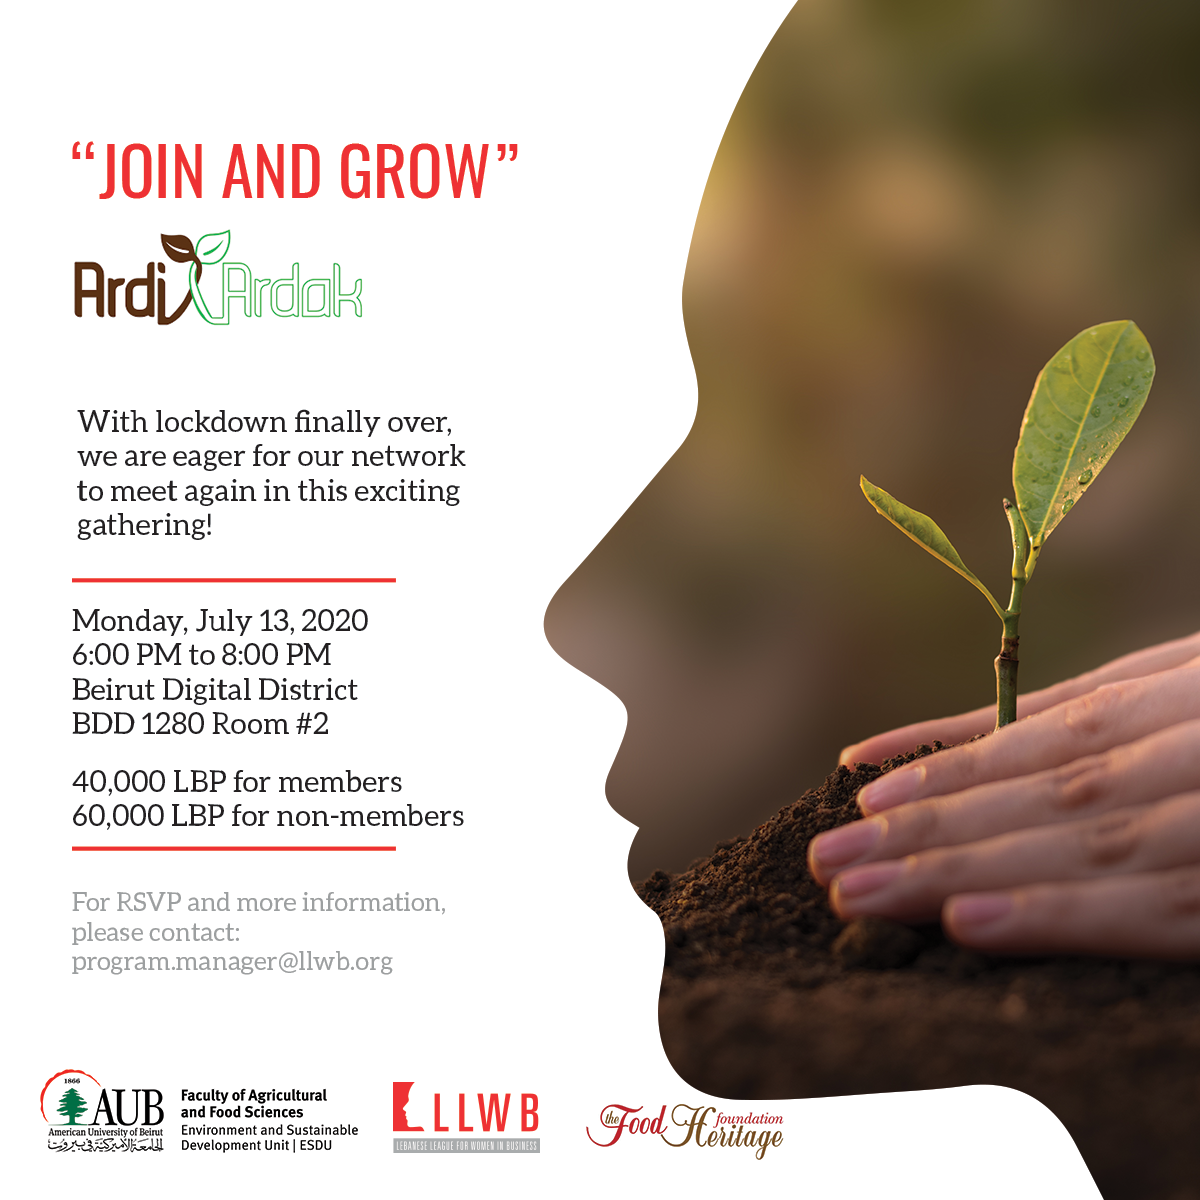 Join & Grow Event – Ardi Ardak Presentation